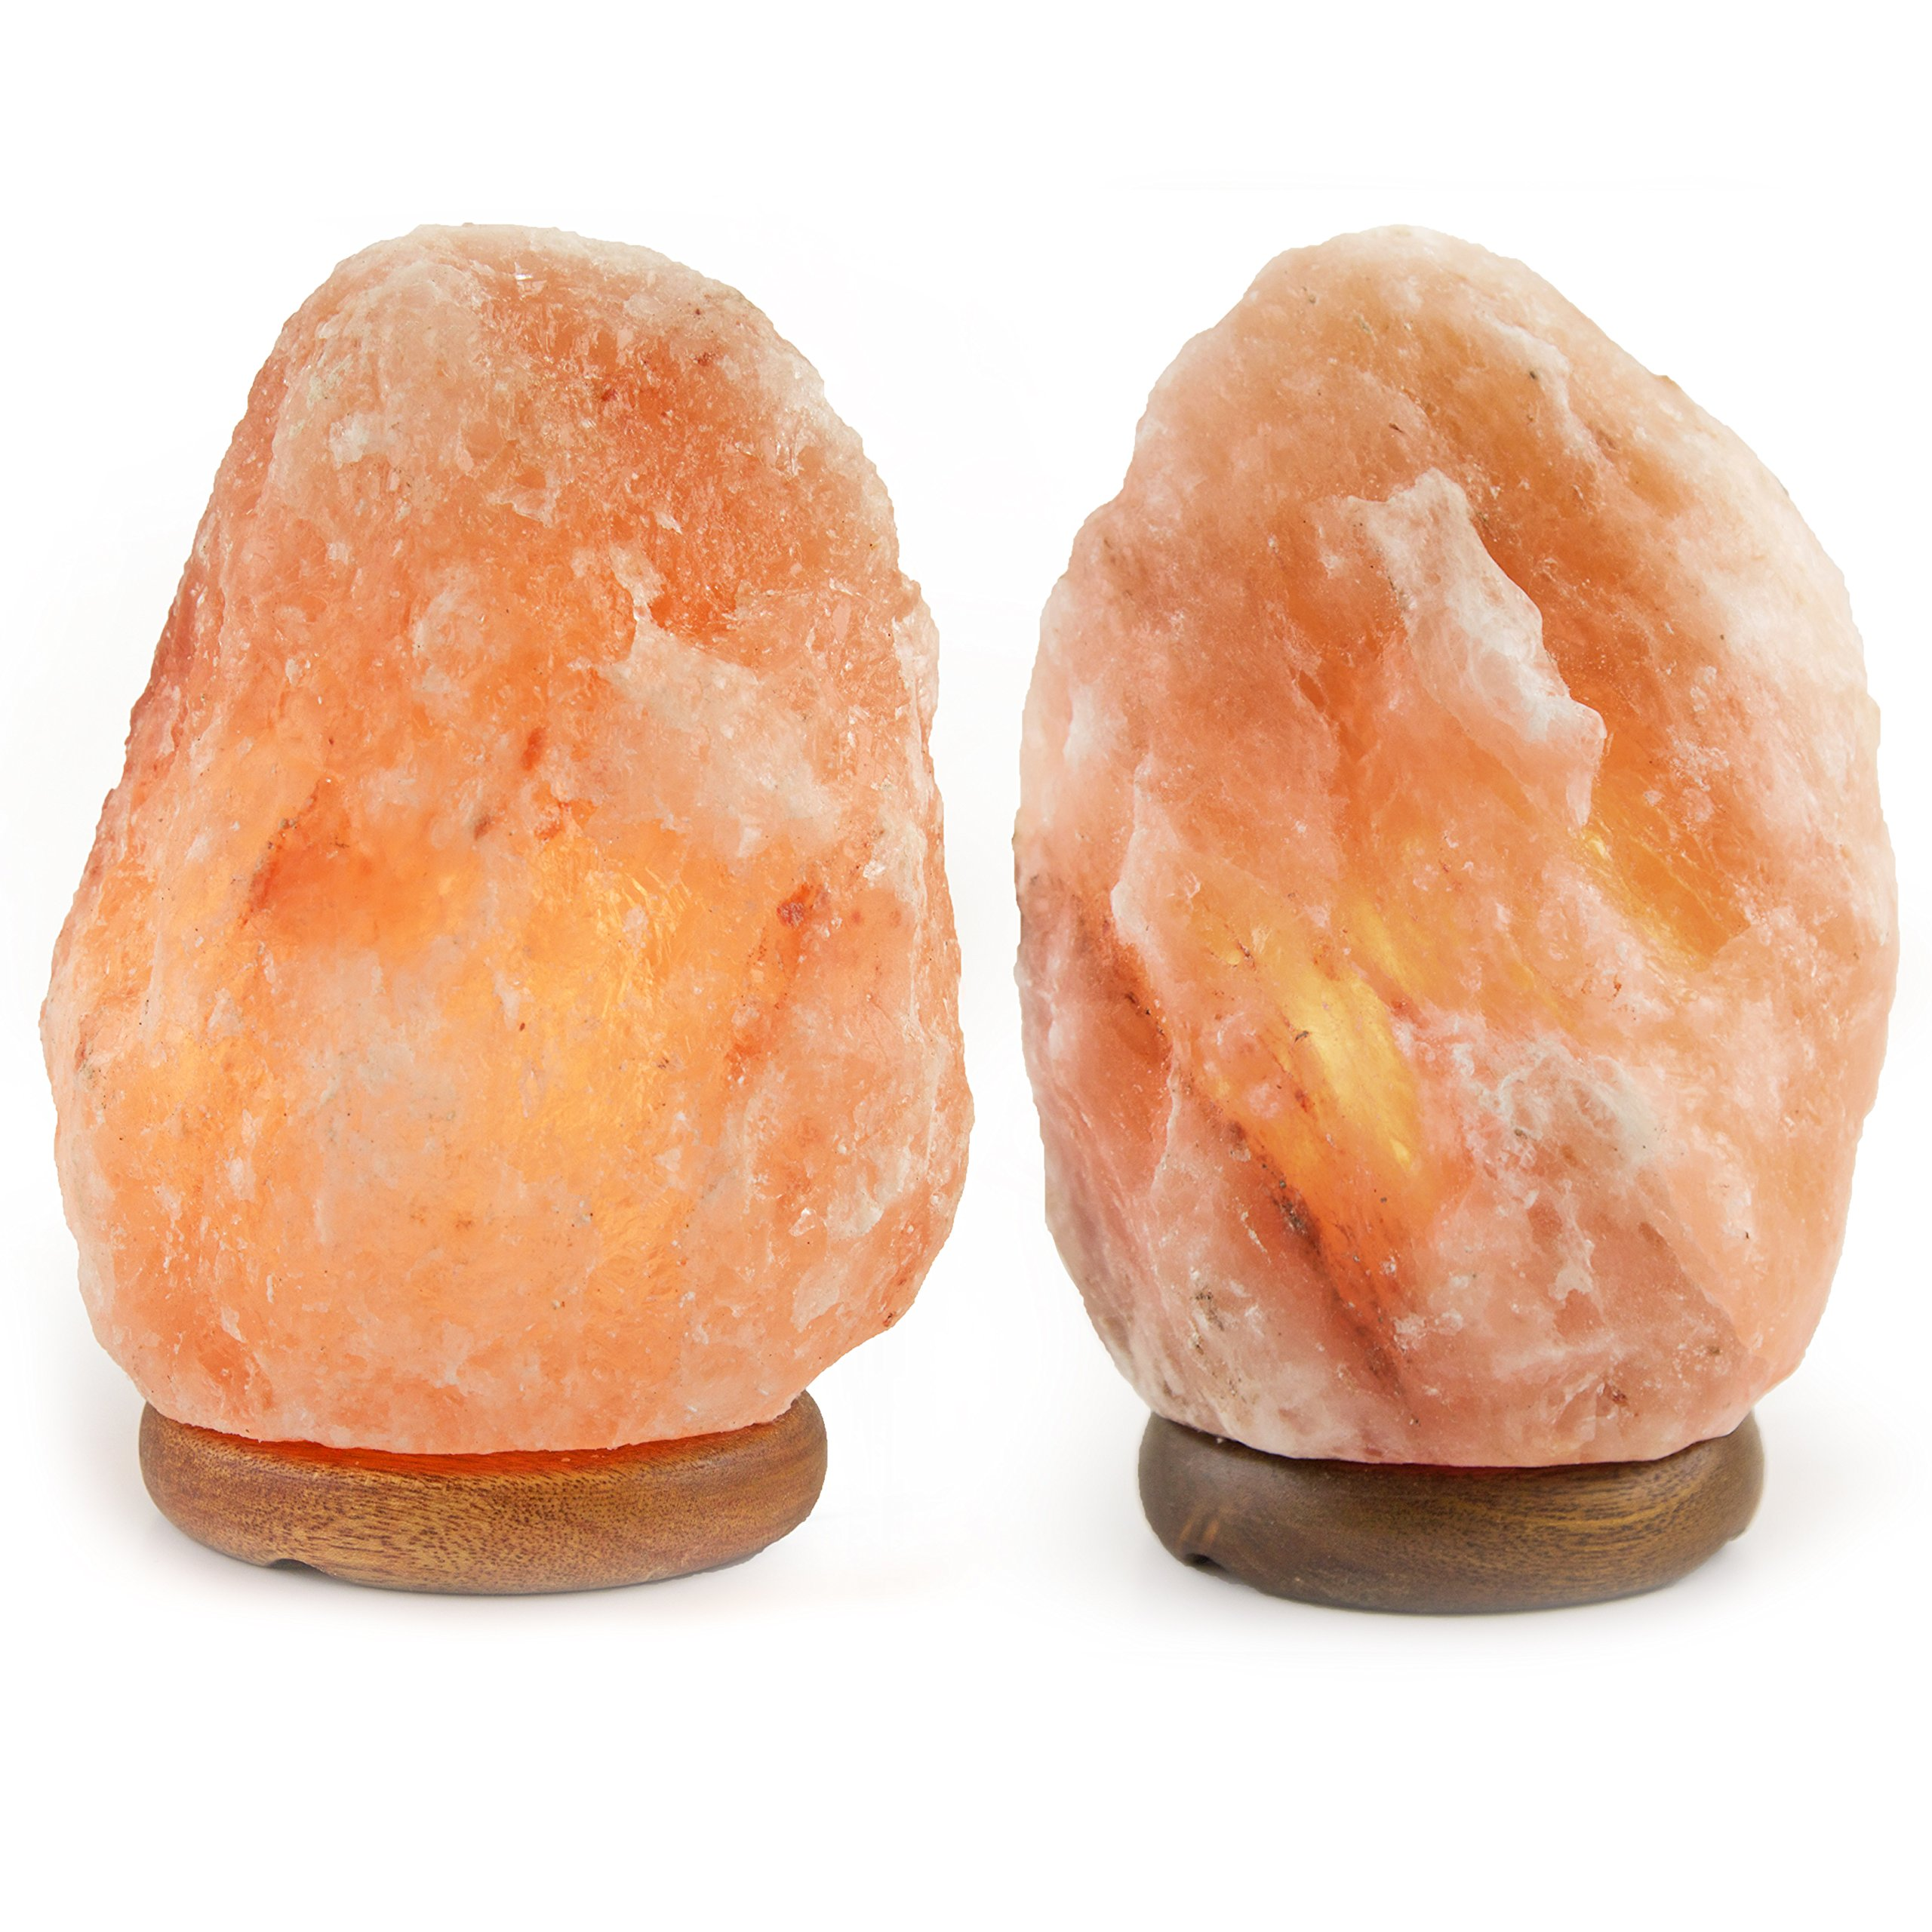 Crystal Allies Gallery: CA SLS-M-2pc Pack of 2 Natural Himalayan Salt Lamp w/Dimmable Switch, 6ft UL-Listed Cord and 15-Watt Light Bulb